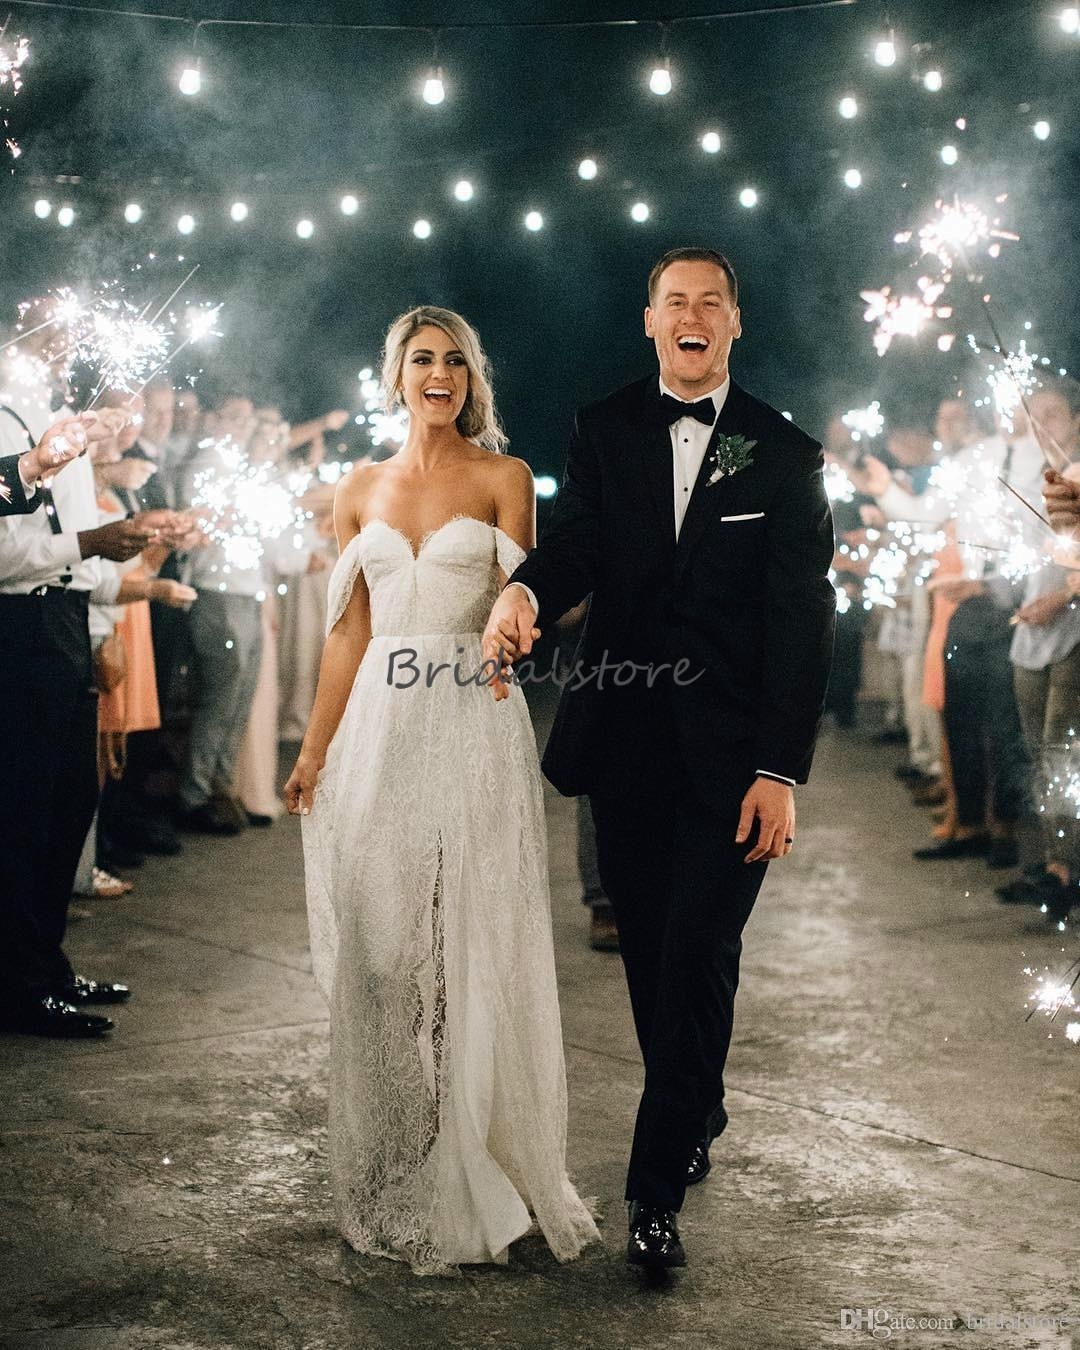 Discount Elegant Off Shoulder Bohemian Wedding Dresses Full Lace Open Front Summer Beach Wedding Dress Uk Cheap Western Robes De Mariee Boheme 2019 Wedding Gowns Cheap Bride Gown From Bridalstore 115 58 Dhgate Com,Long Navy Blue Dress For Wedding